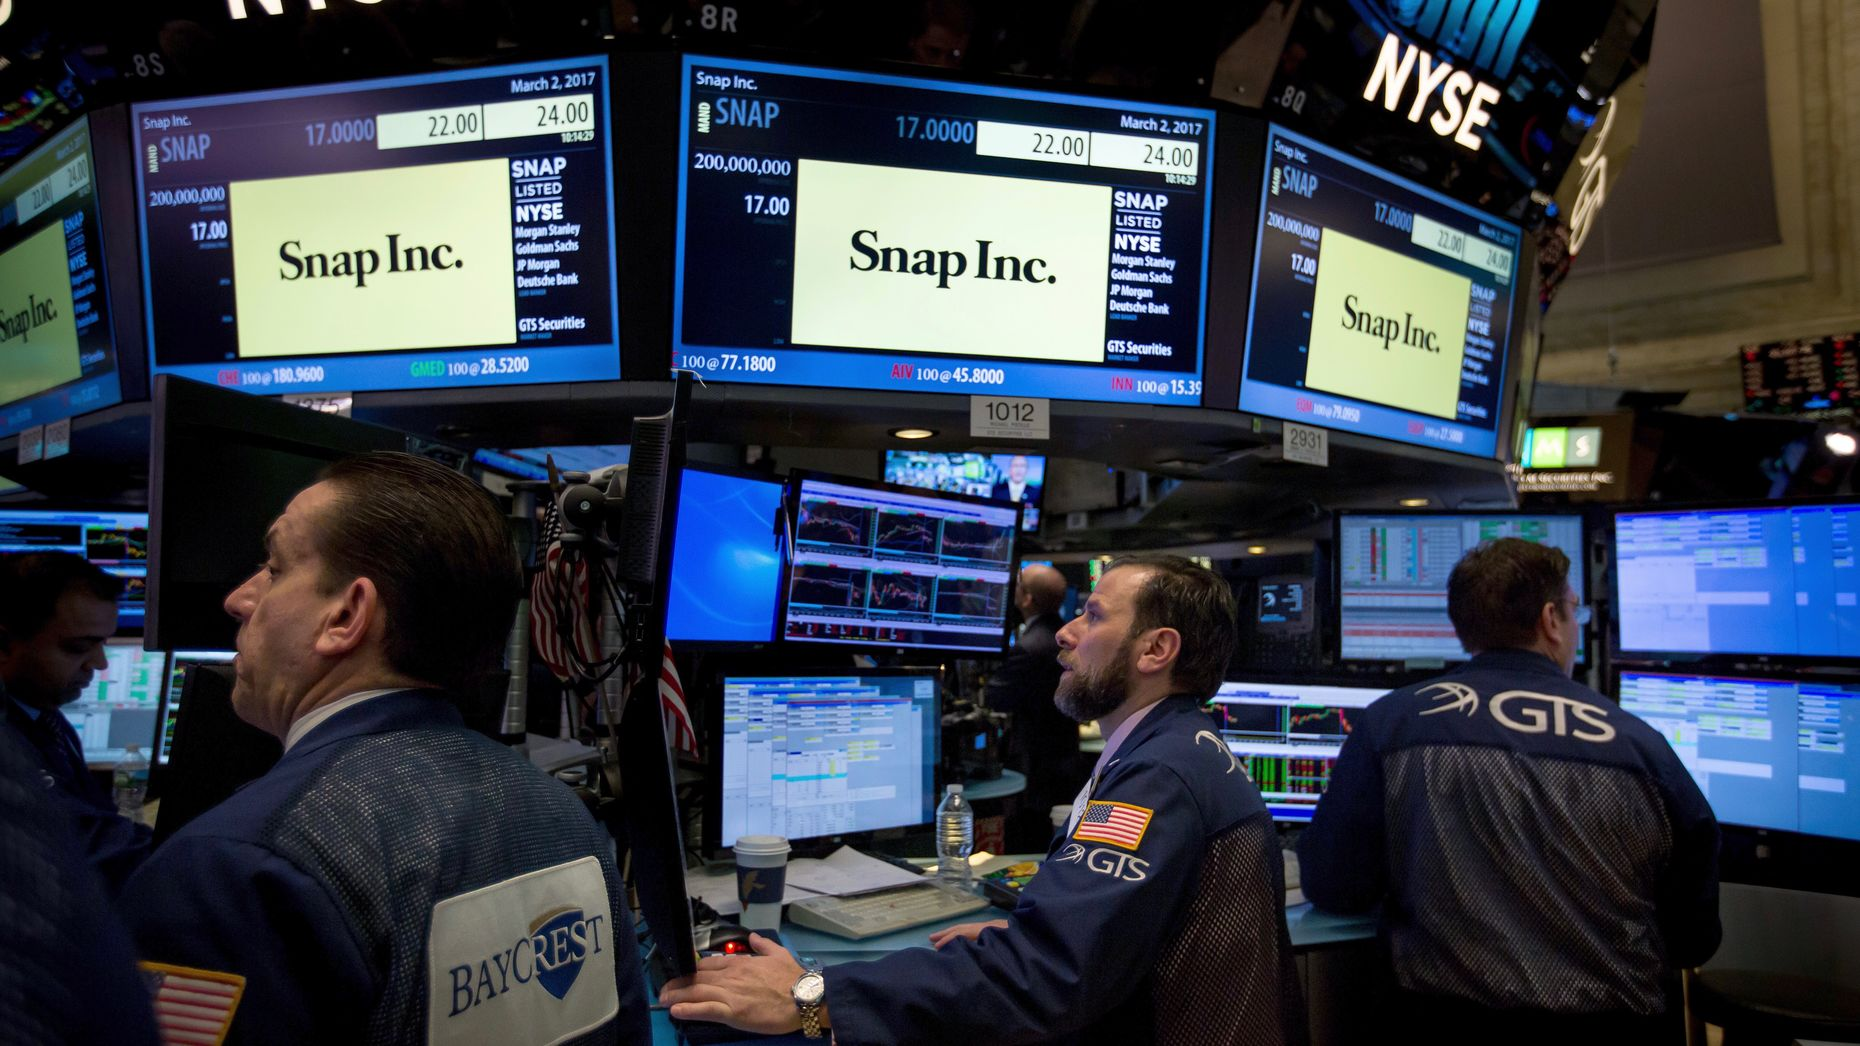 Traders on the floor of the New York Stock Exchange when Snap went public in March. Photo by Bloomberg.